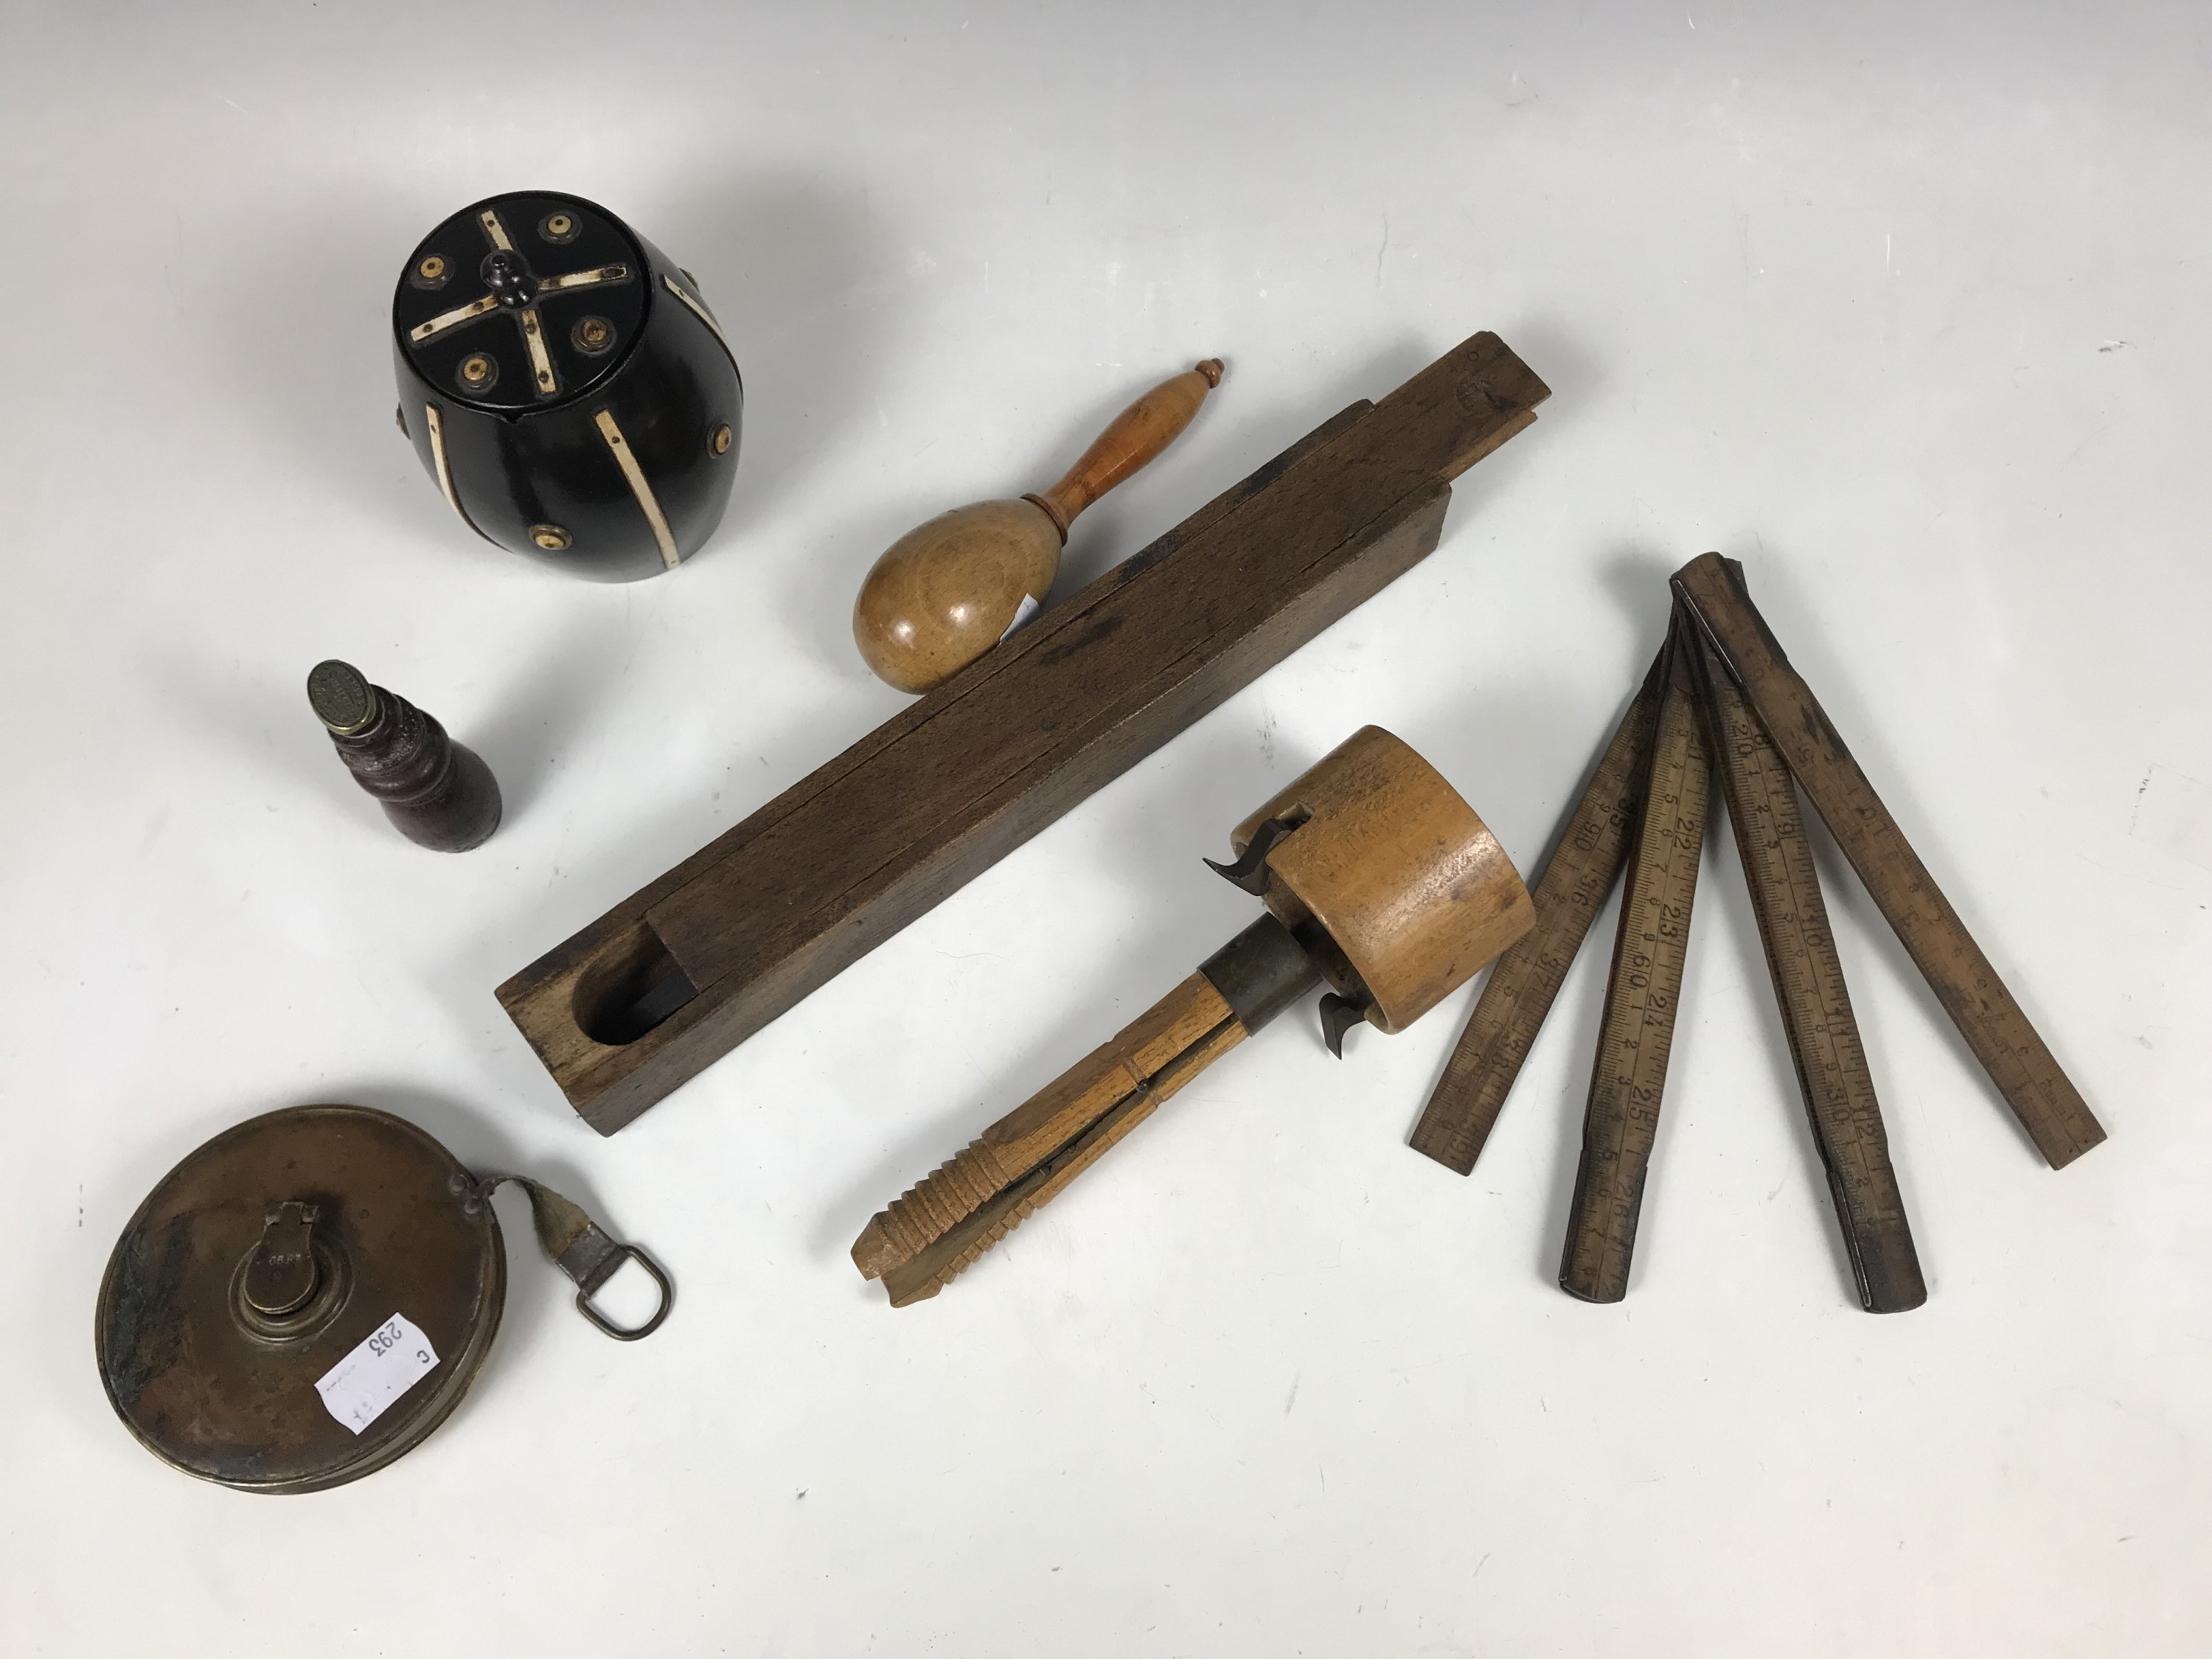 Lot 15 - Collectors' items including a cased woodworking bit, a turned beech darning egg, a wood and brass